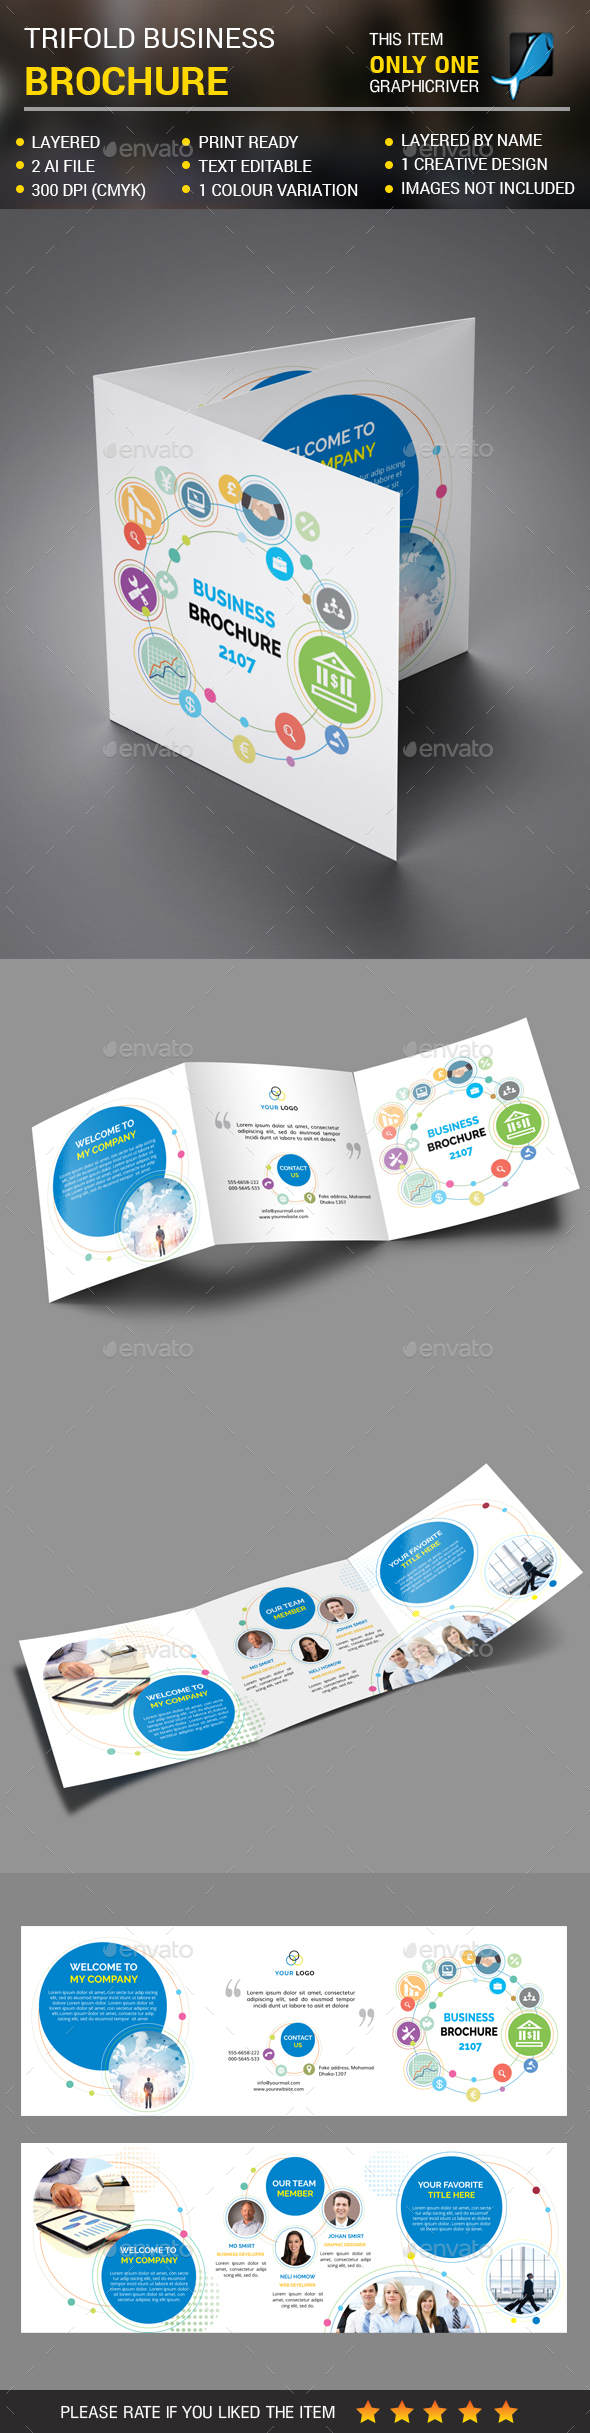 Square Corporate Trifold vol 3 - Corporate Brochures